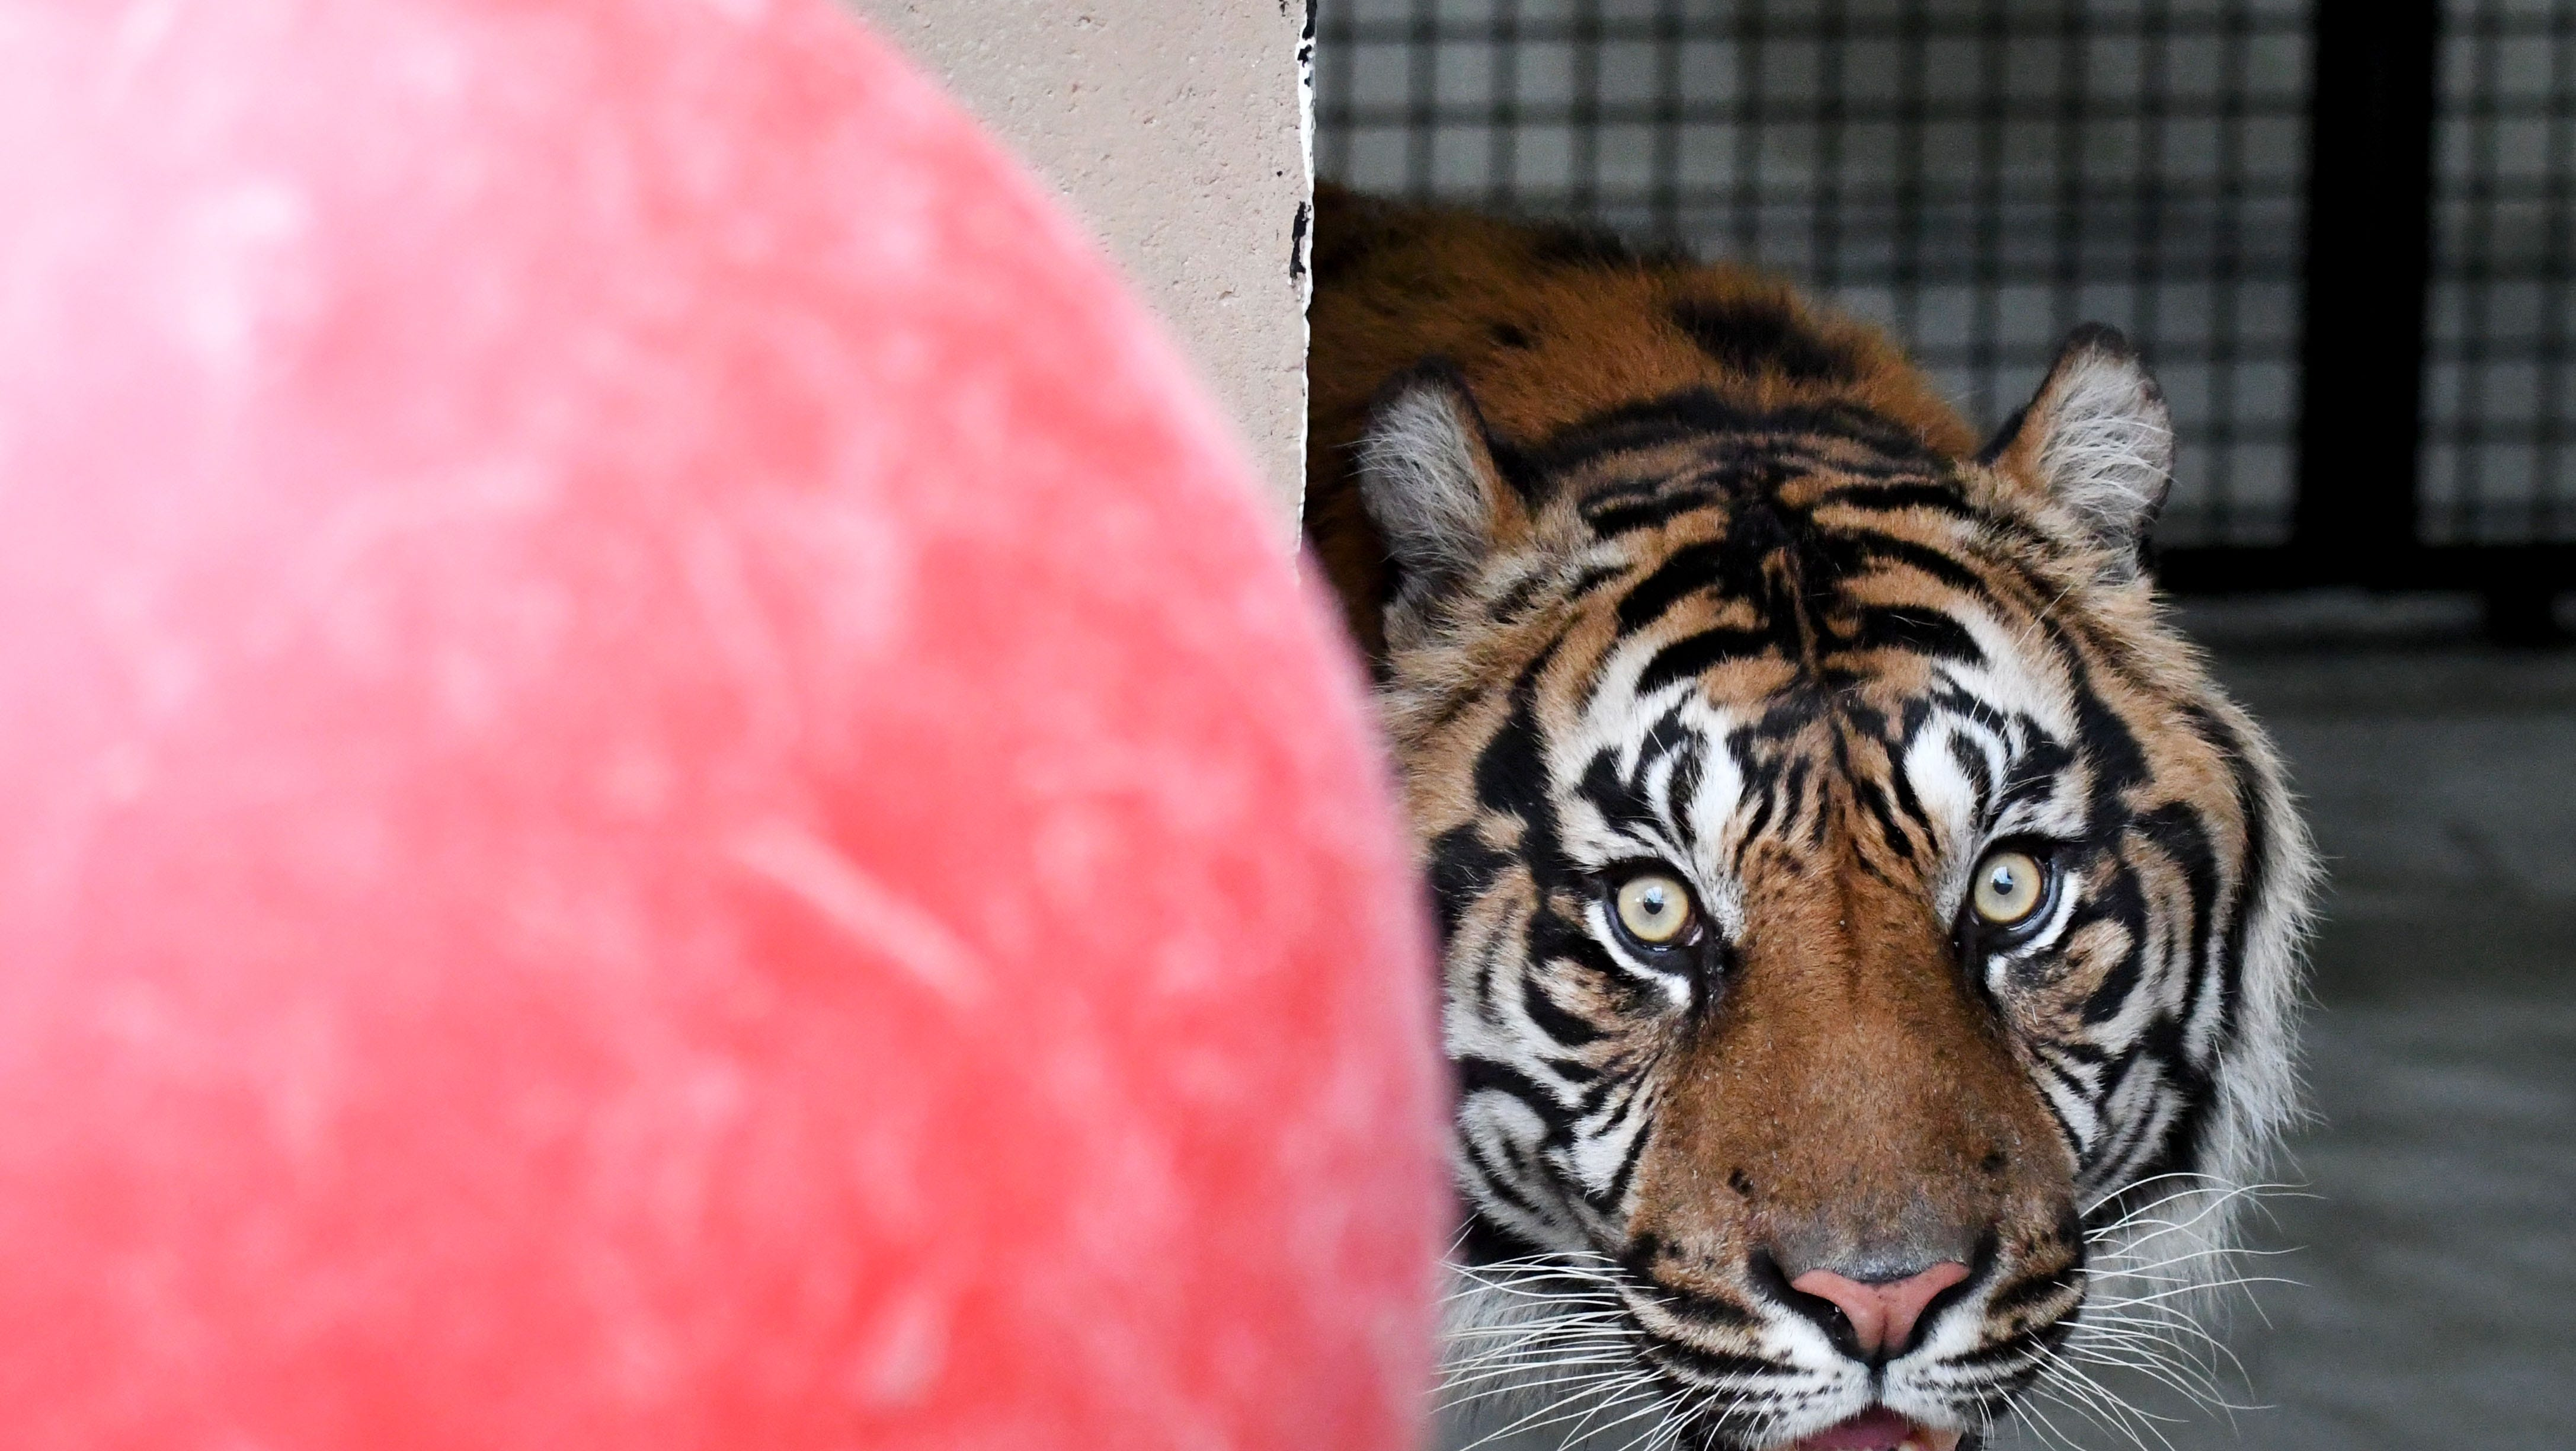 The Hattiesburg Zoo receives a new Sumatran tiger, Kipling, from the Dallas Zoo on Monday, December 17, 2018. Kipling was born at the Jackson Zoo and has returned back to Mississippi.